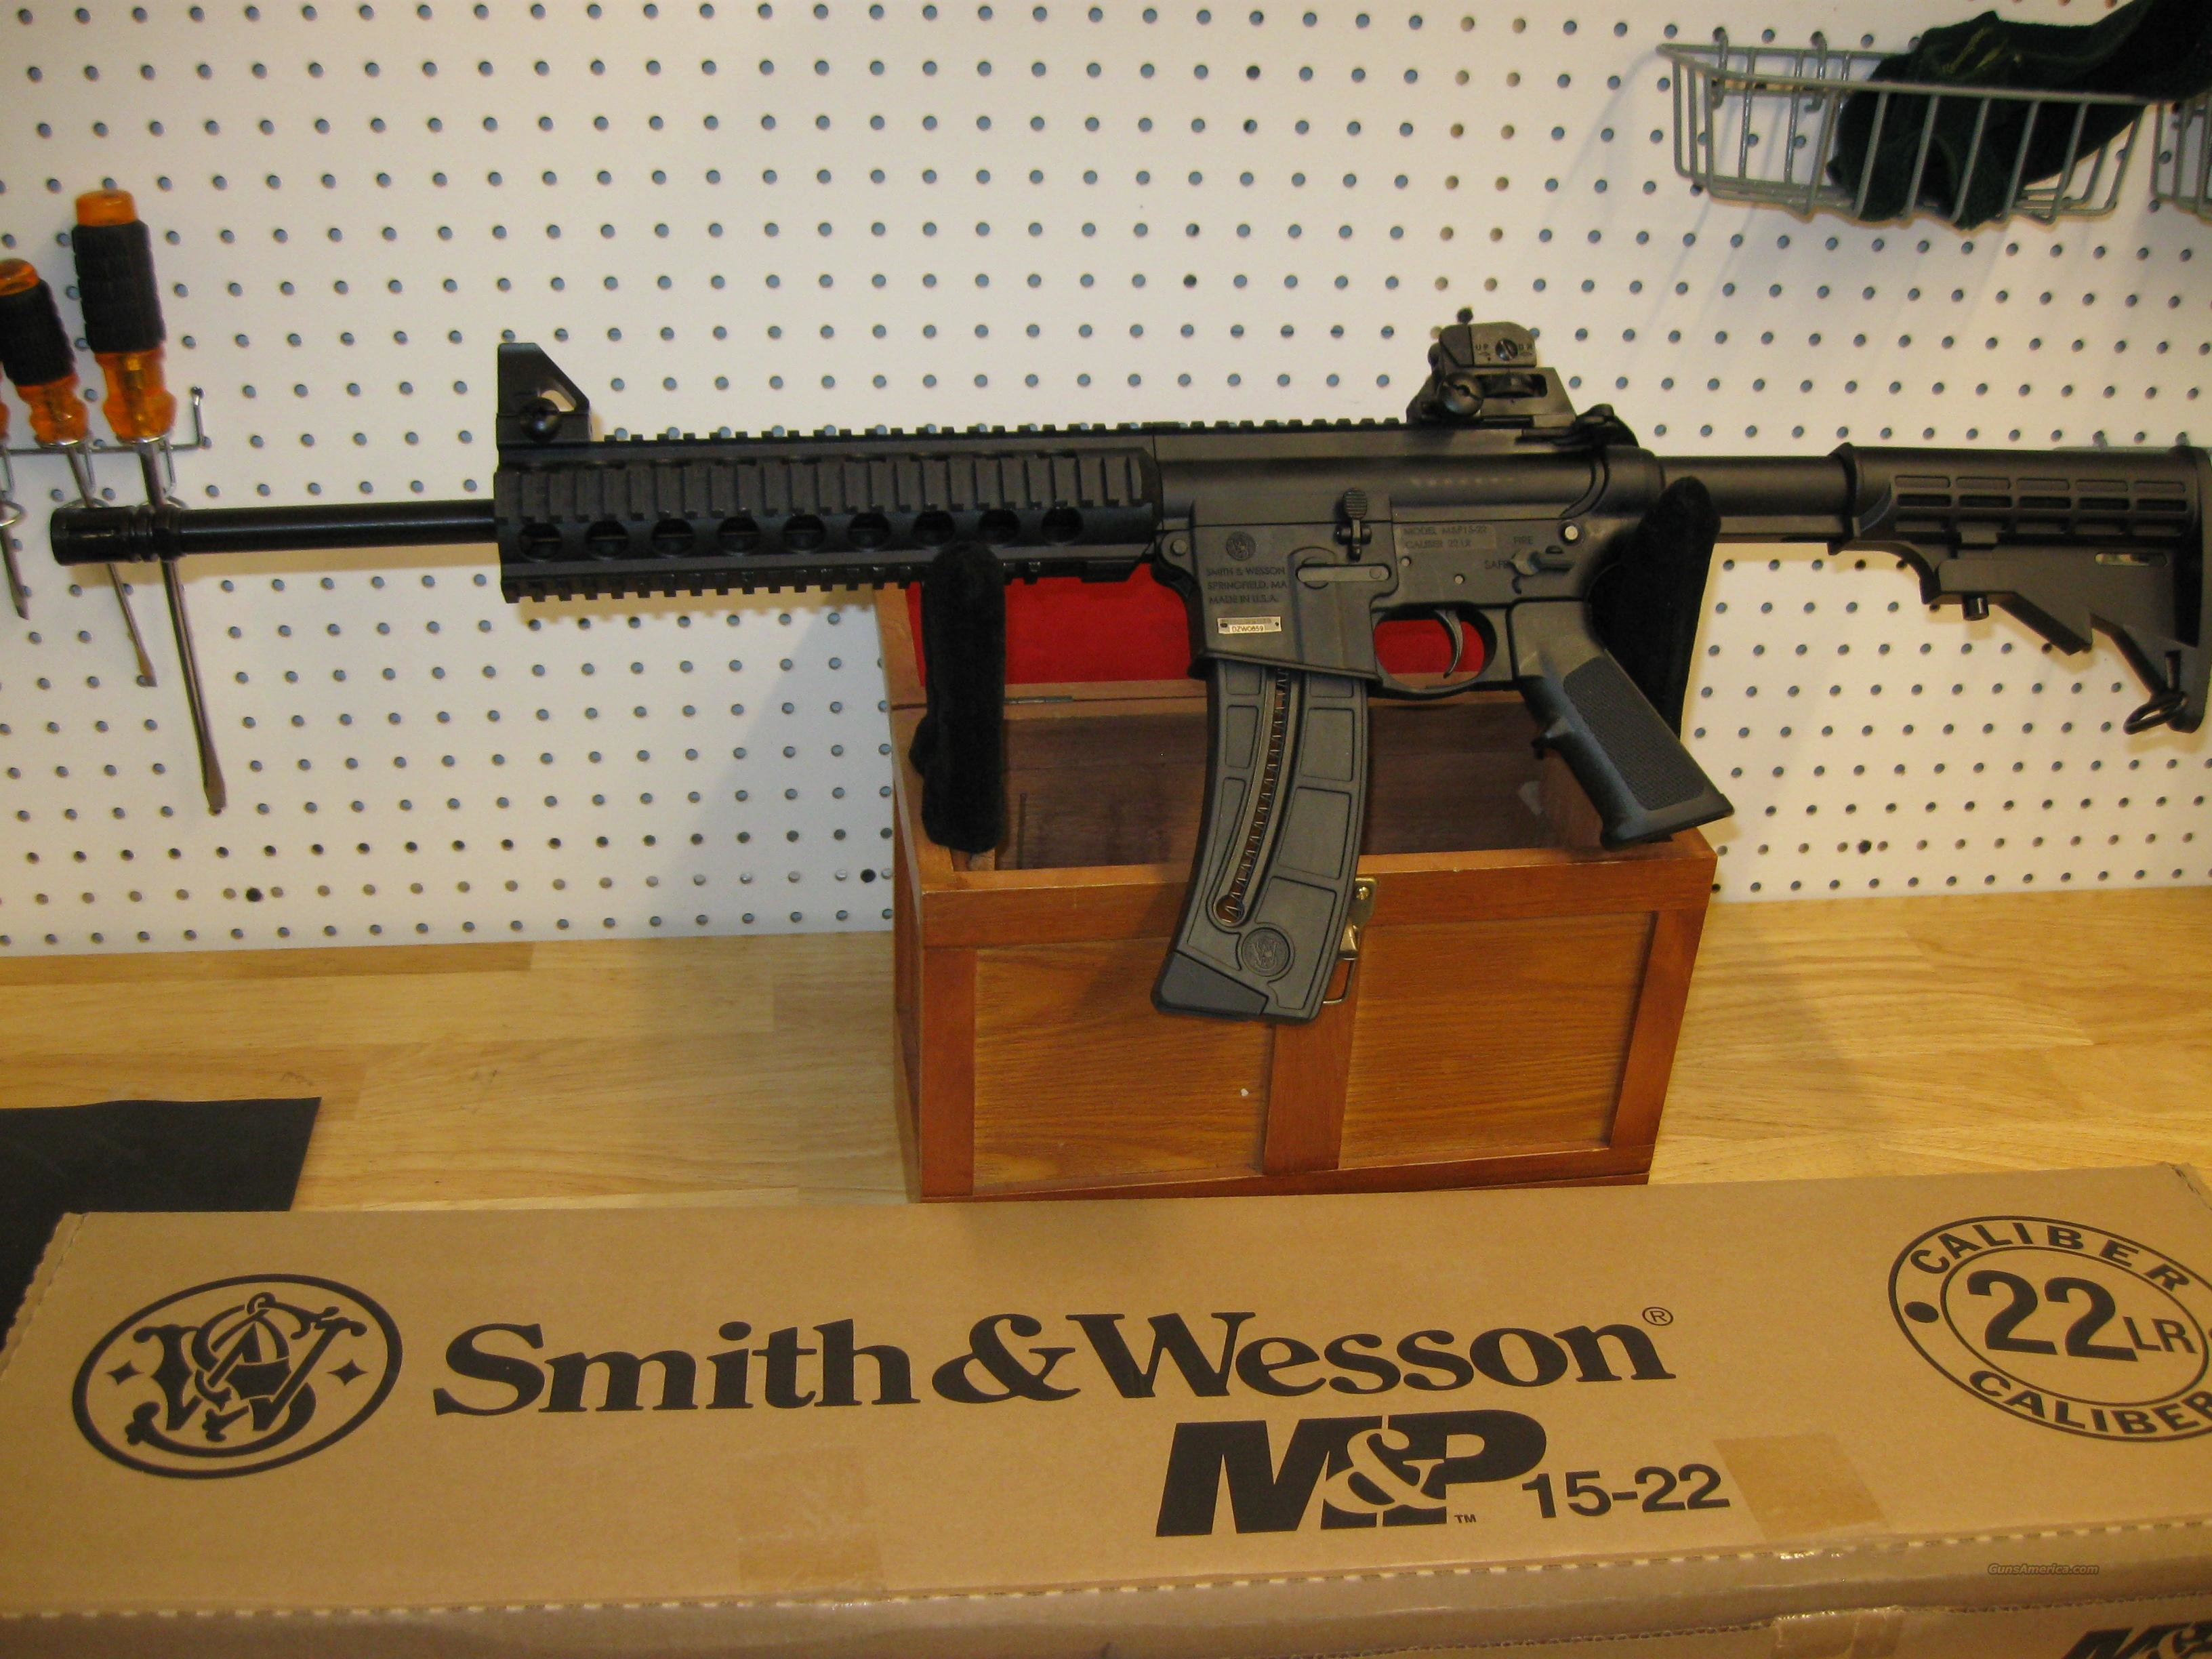 Smith & Wesson MP15-22 Rifle 811033, 22 Long Rifle, 16 in, 6-Point Collapsible Stock, Black Finish, 25 Rd  Guns > Rifles > Smith & Wesson Rifles > M&P